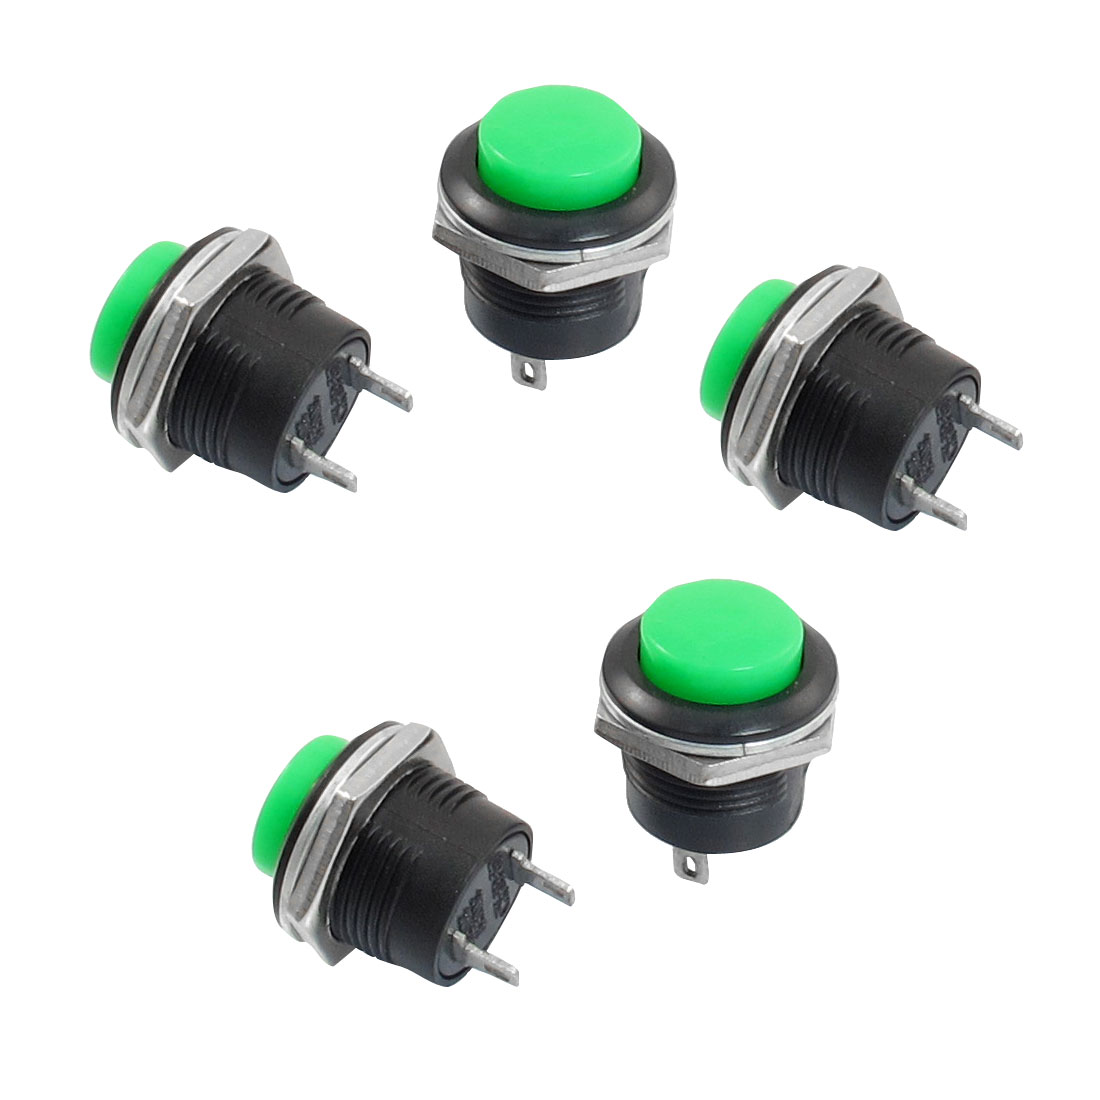 5 x Momentary SPST NO Red Round Cap Push Button Switch AC 6A//125V 3A//250V L5G4